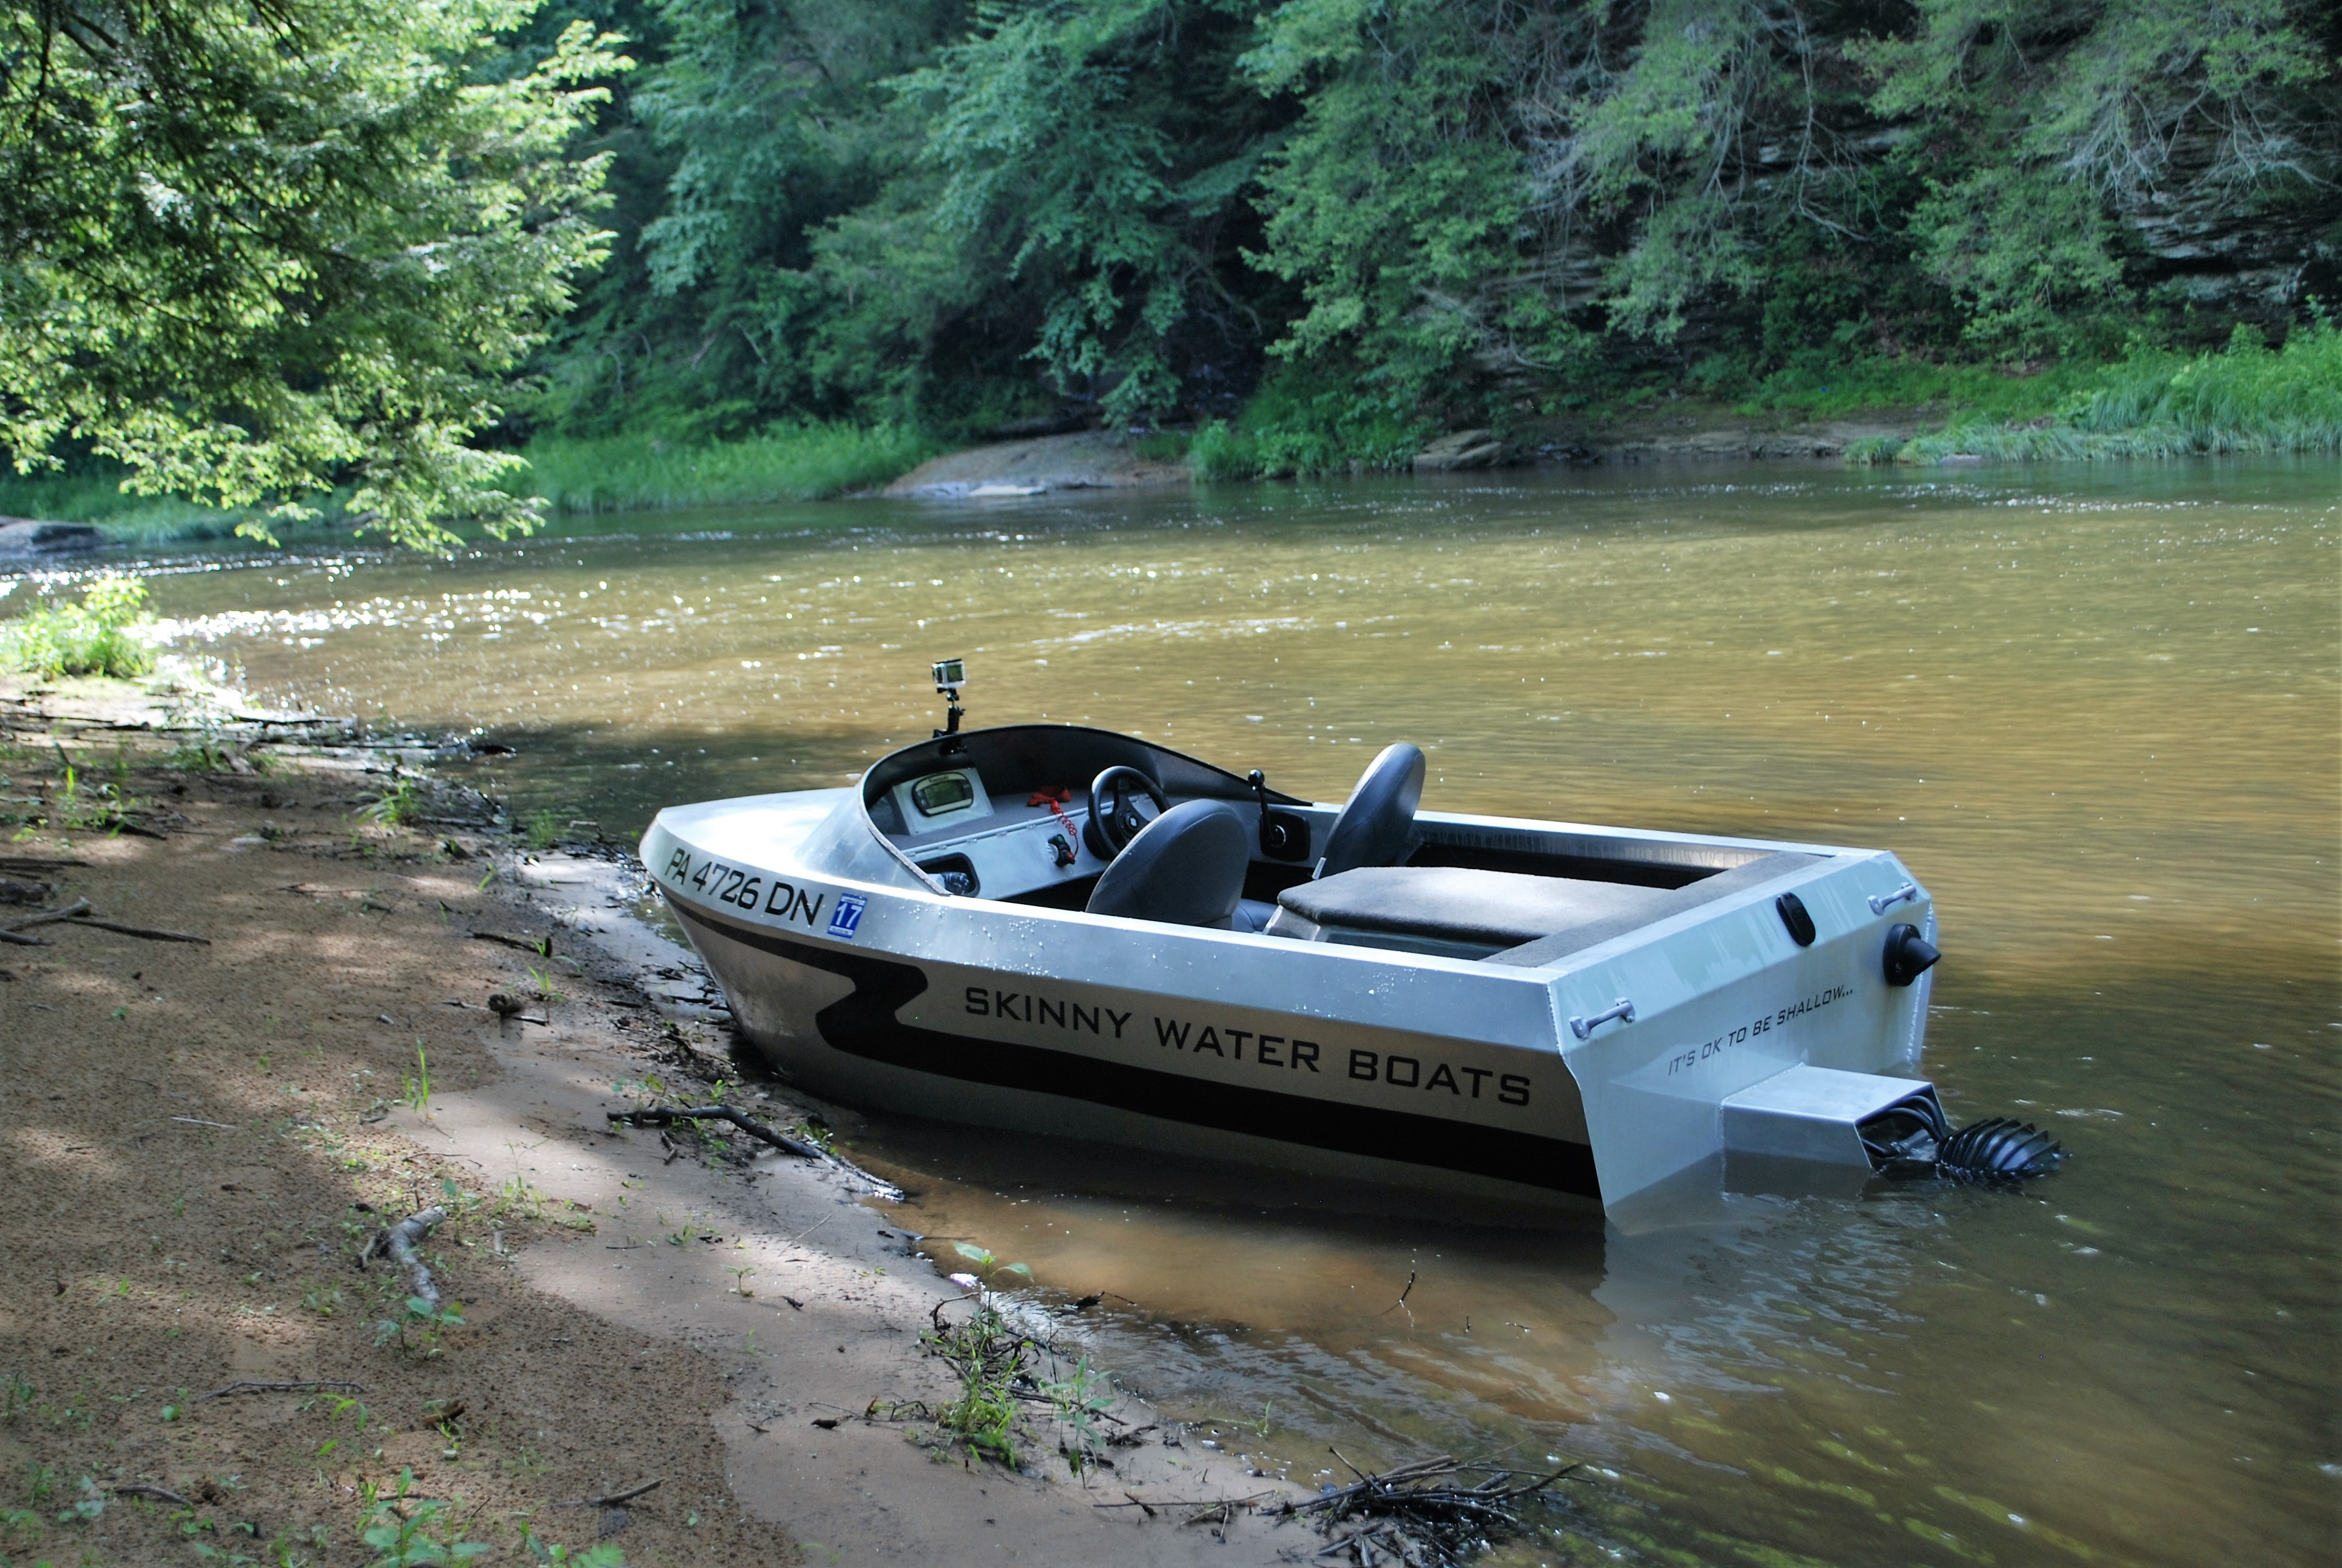 Small Jet Boats >> Skinny Water Boats Compact Mini Aluminum Jet Boats